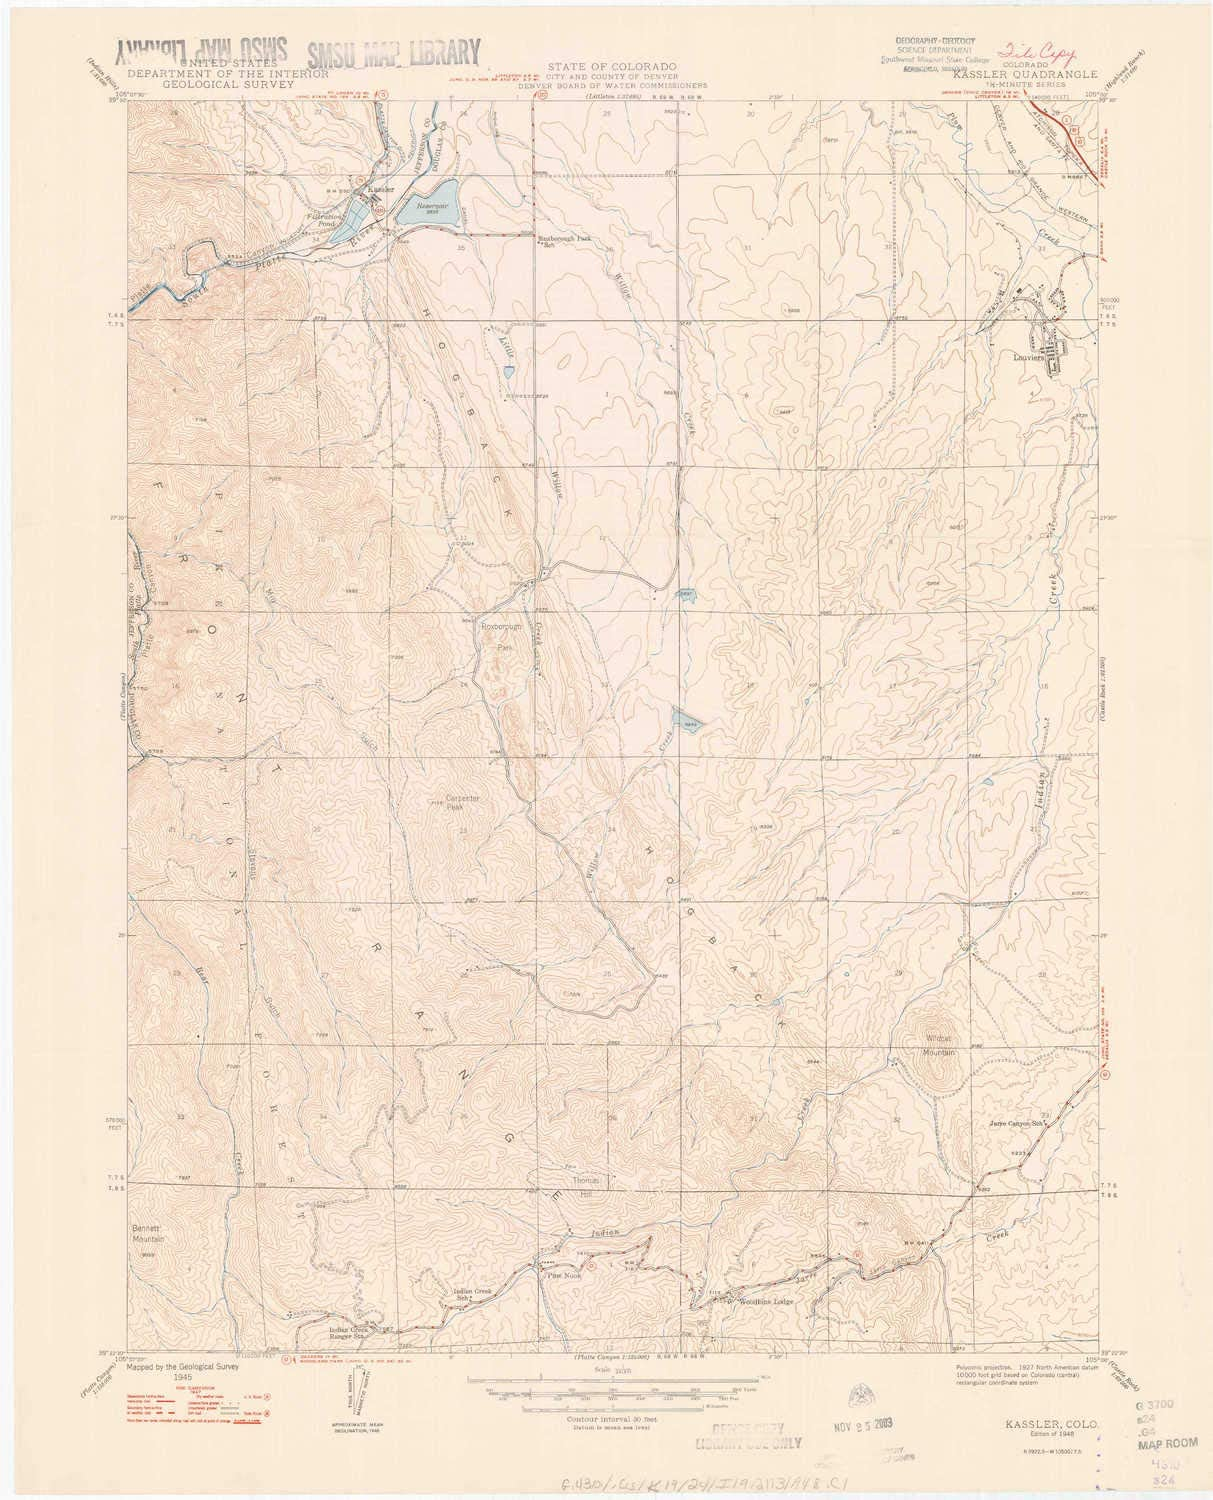 1948 27.3 x 22.1 in 1:24000 Scale YellowMaps Kassler CO topo map 7.5 X 7.5 Minute Historical